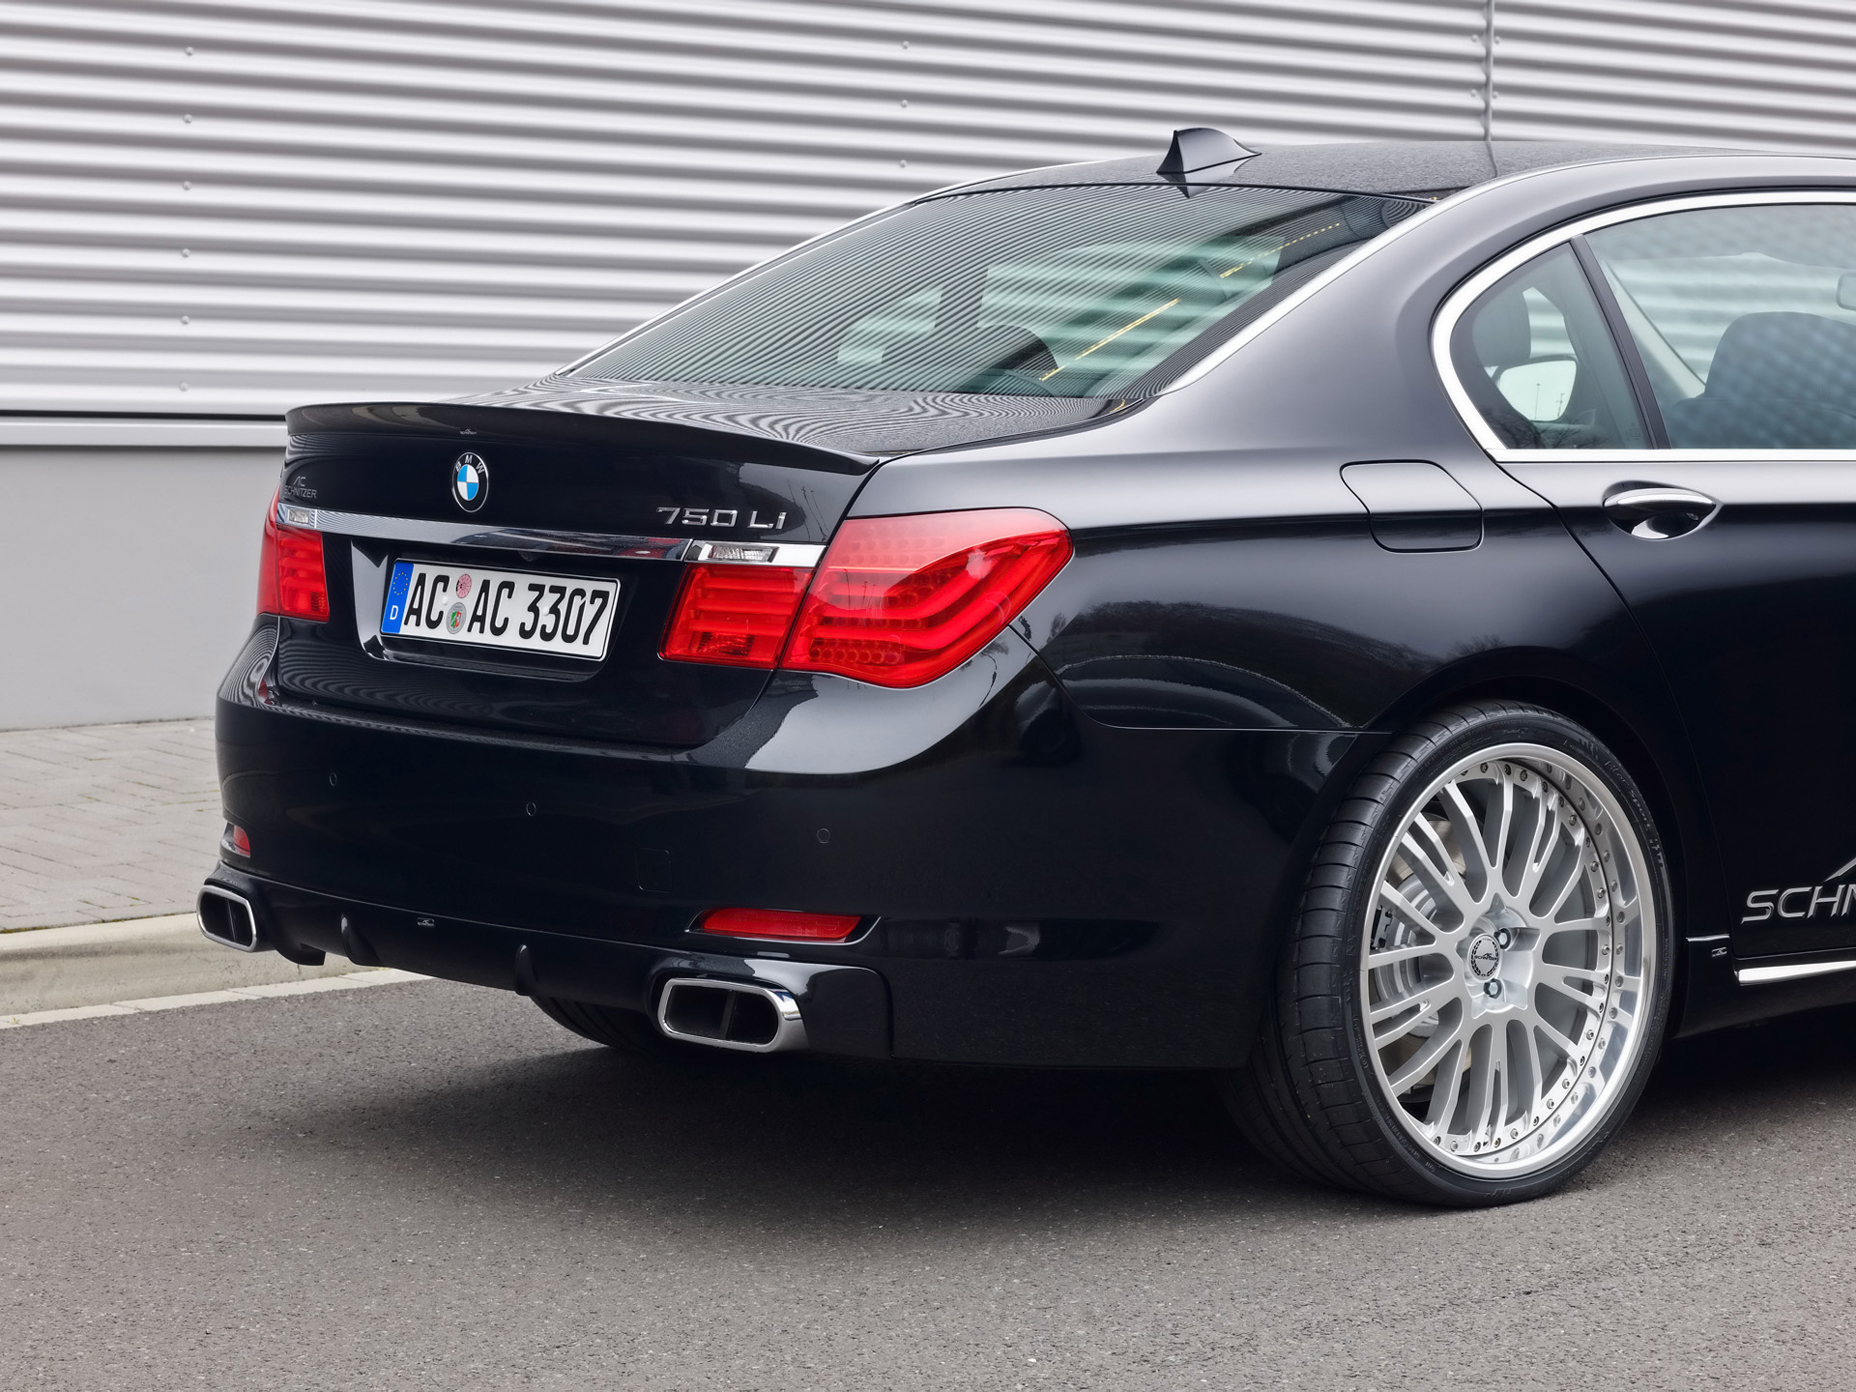 BMW Cars 7 Series 750Li AC Schnitzer Type VII Racing Rear Angle View Wallpaper